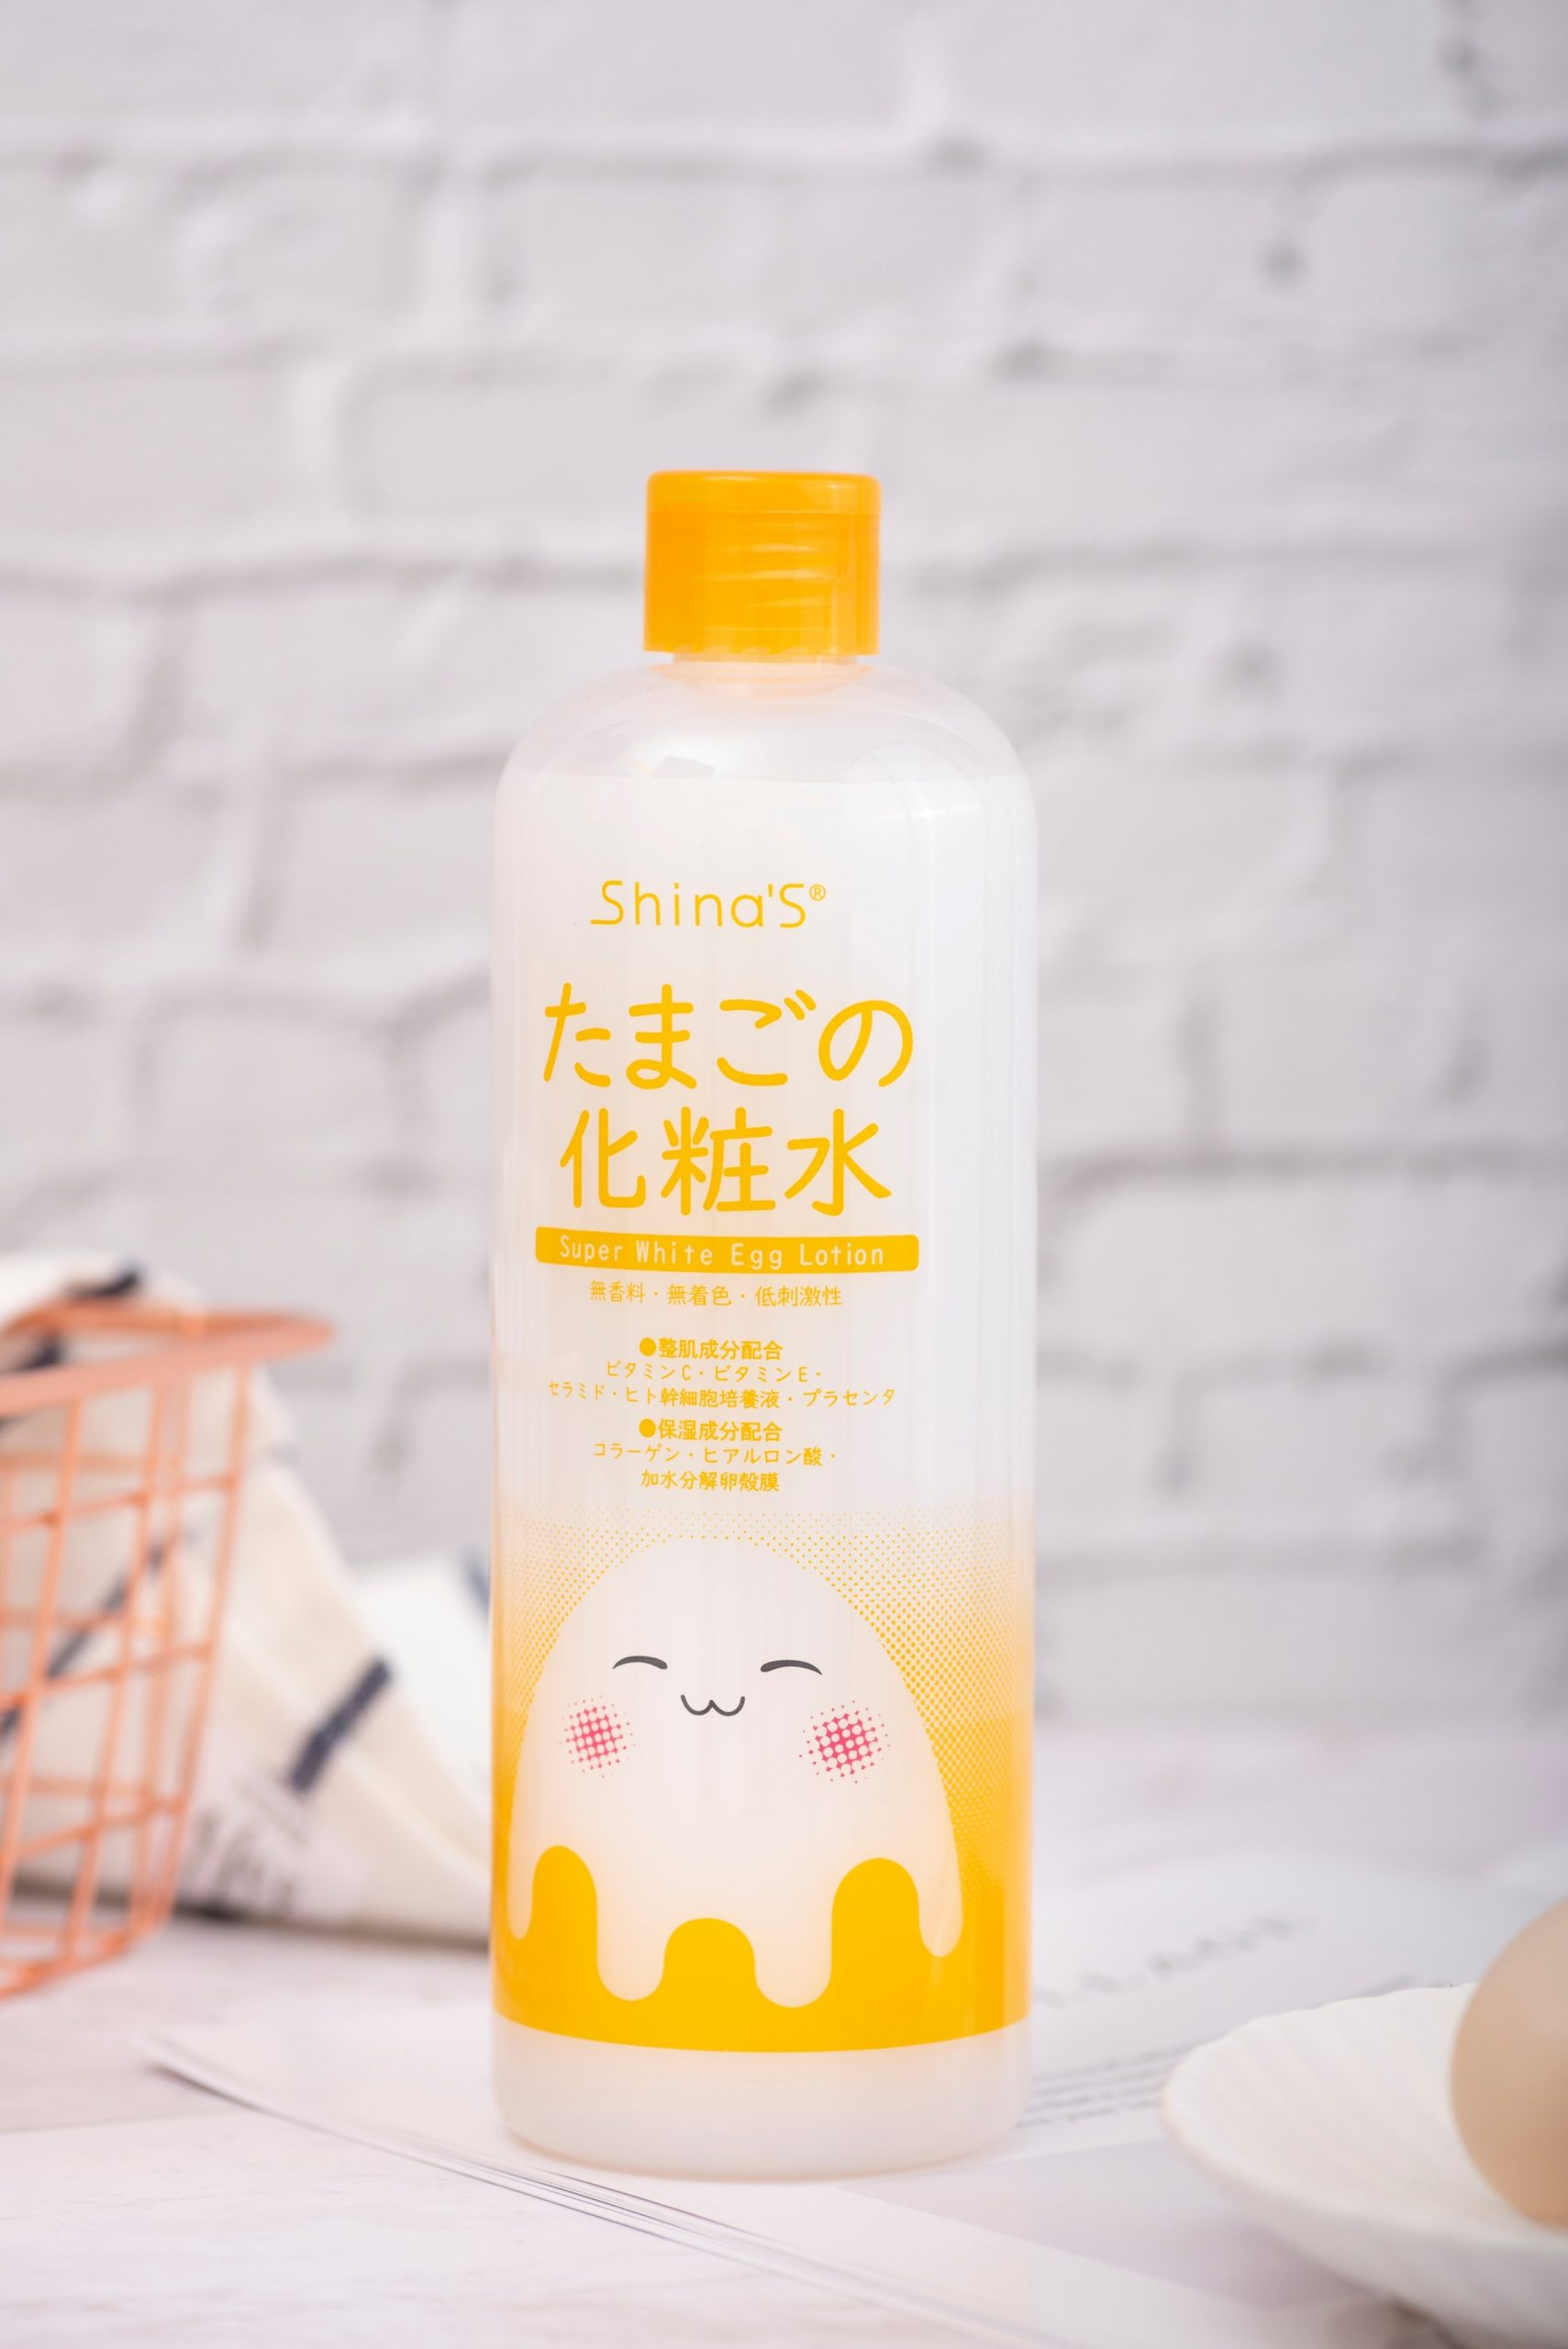 nuoc hoa hong trung super white egg lotion nhat ban scaled